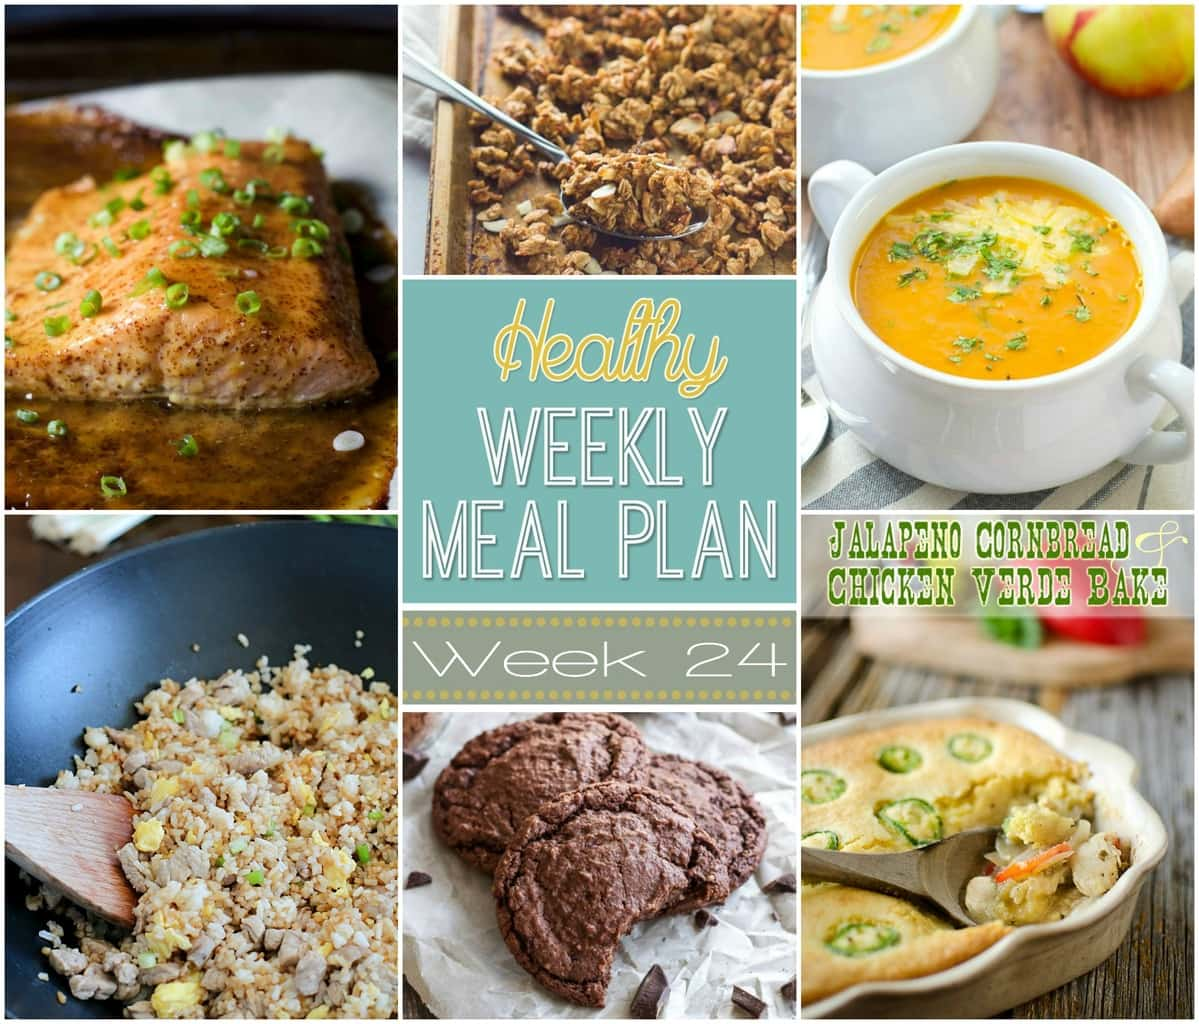 Healthy meal plan recipes for a week